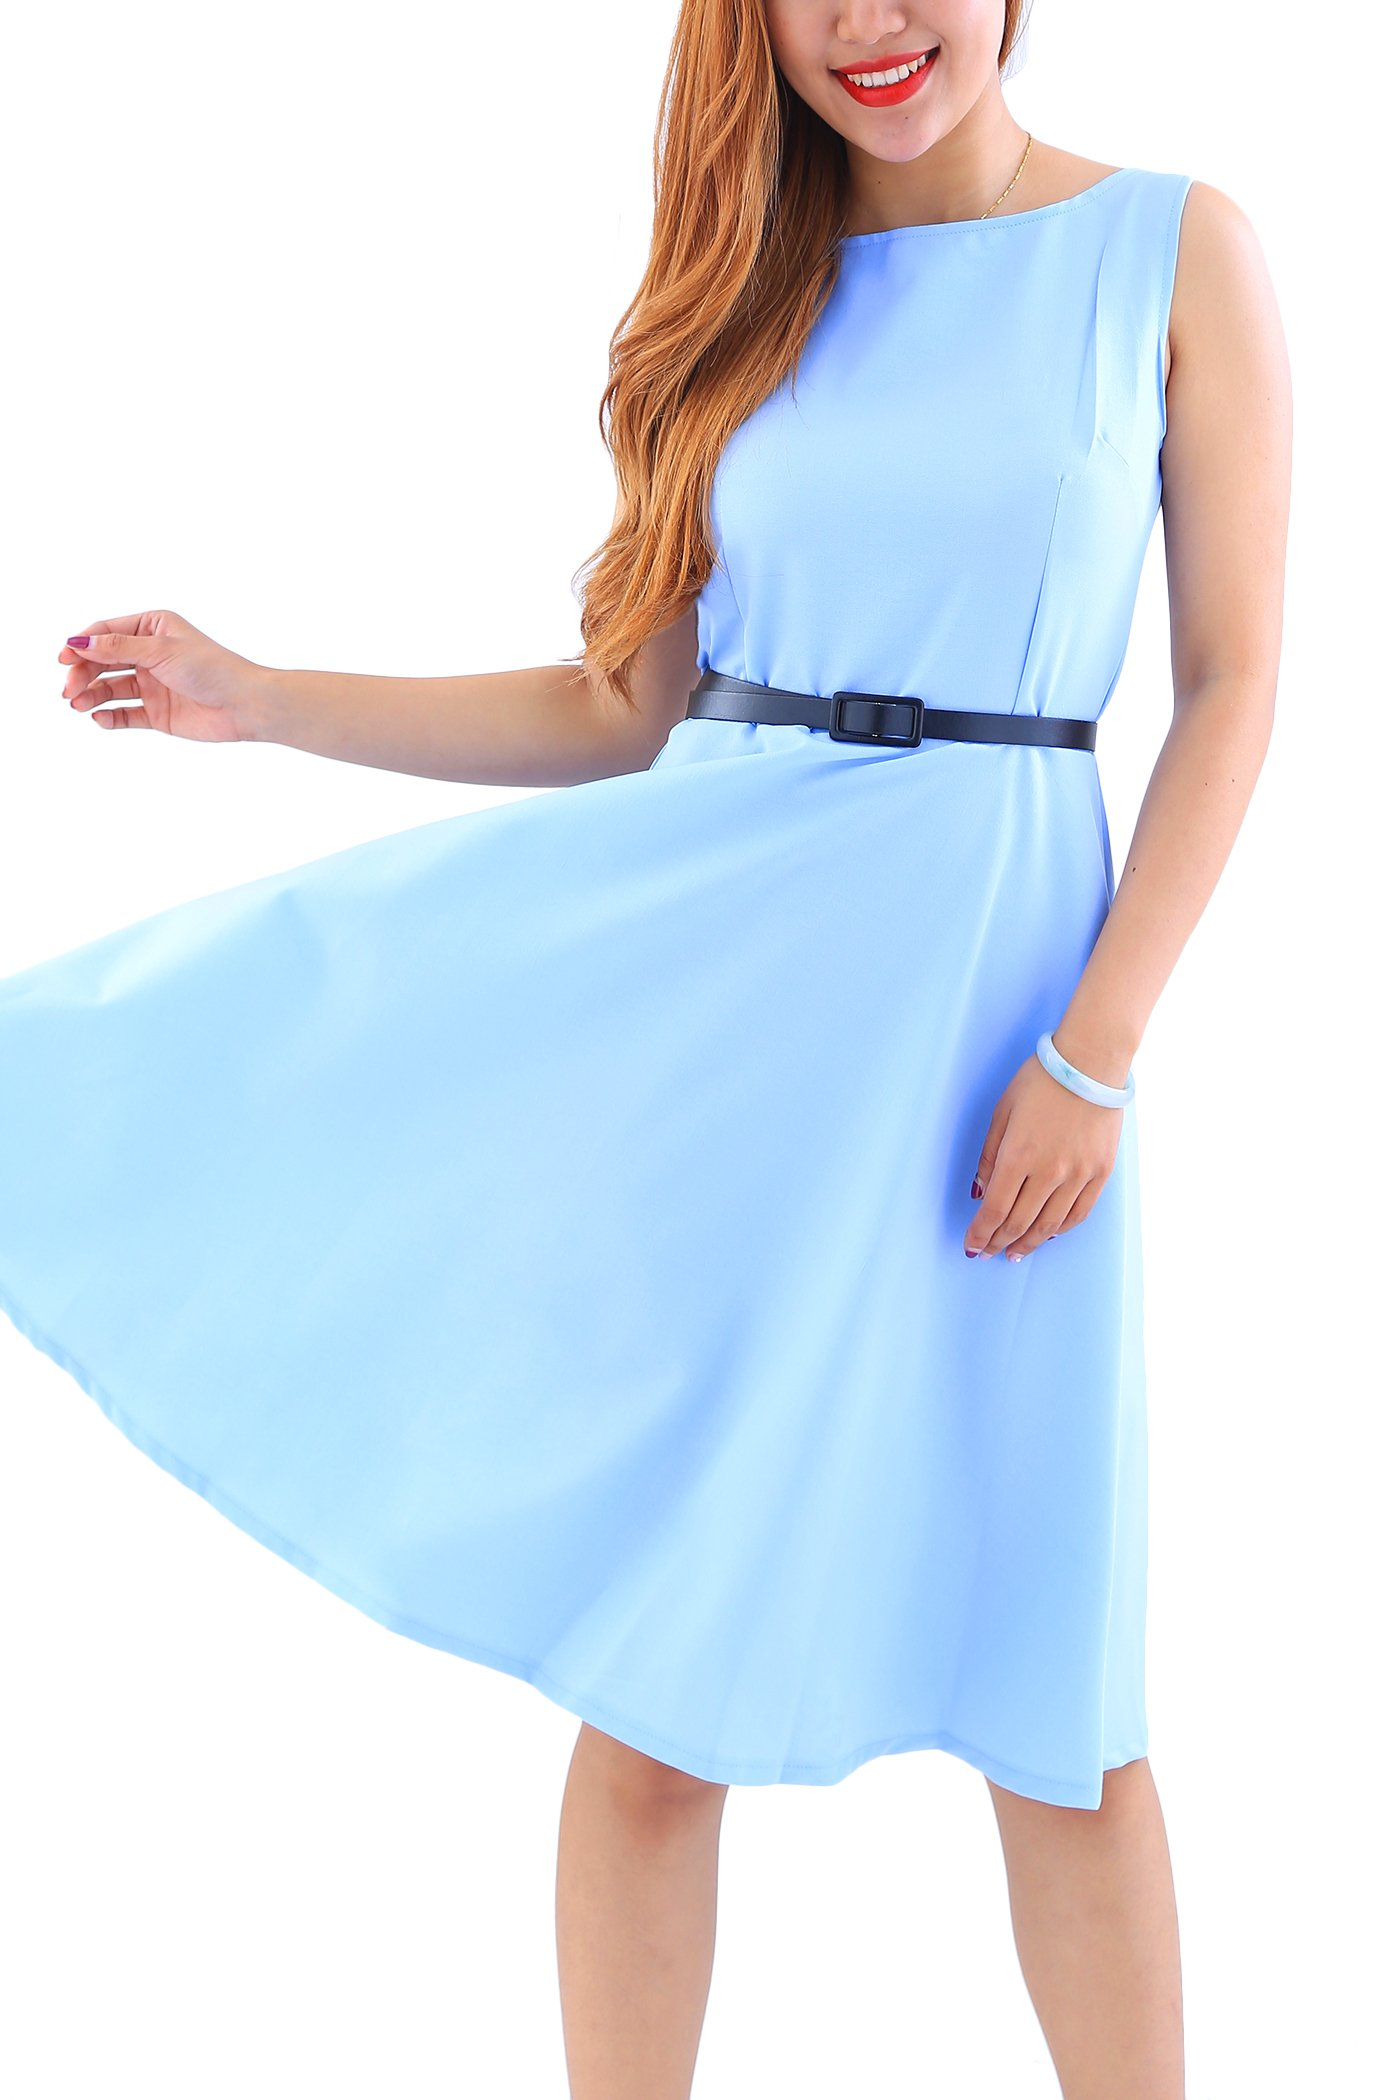 YMING Casual Sleeveless 1950s Solid Color Dress Party Prom Midi Dress Blue XL